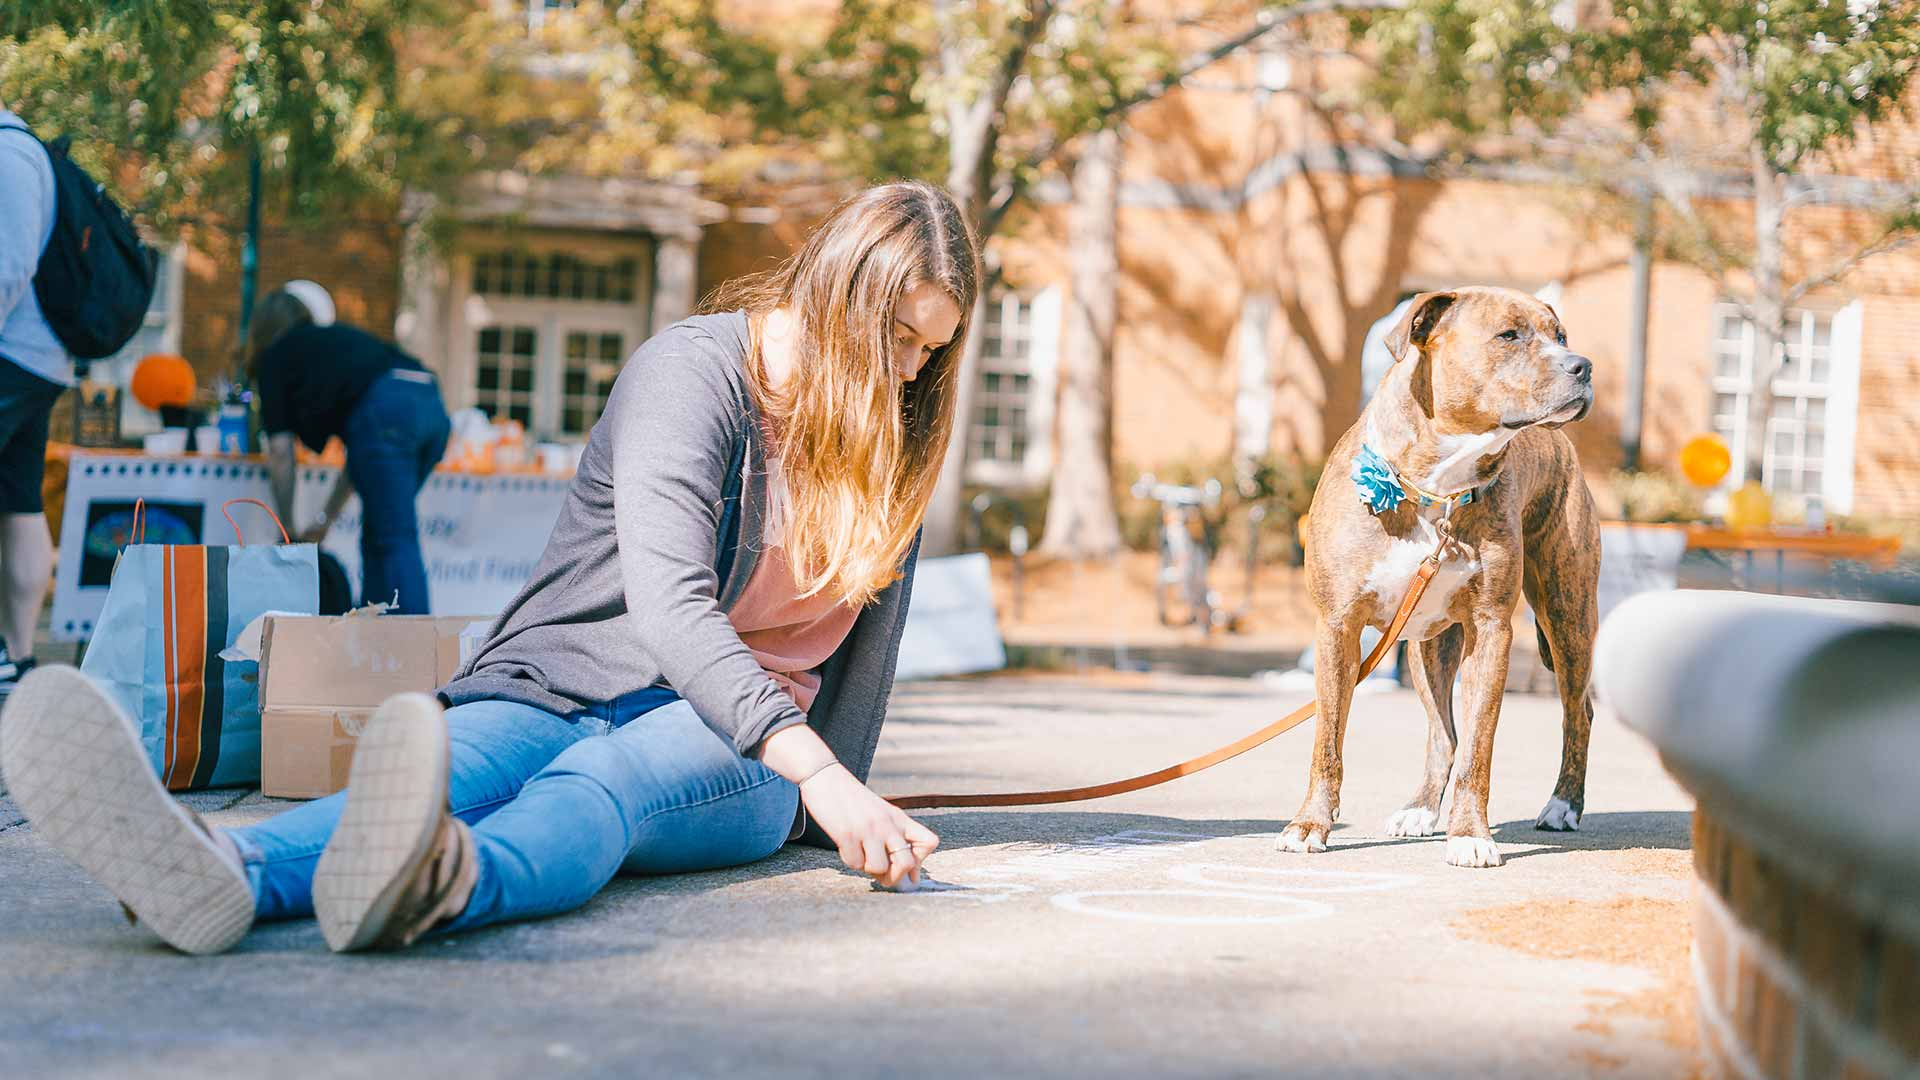 female student chalking sidewalk with dog